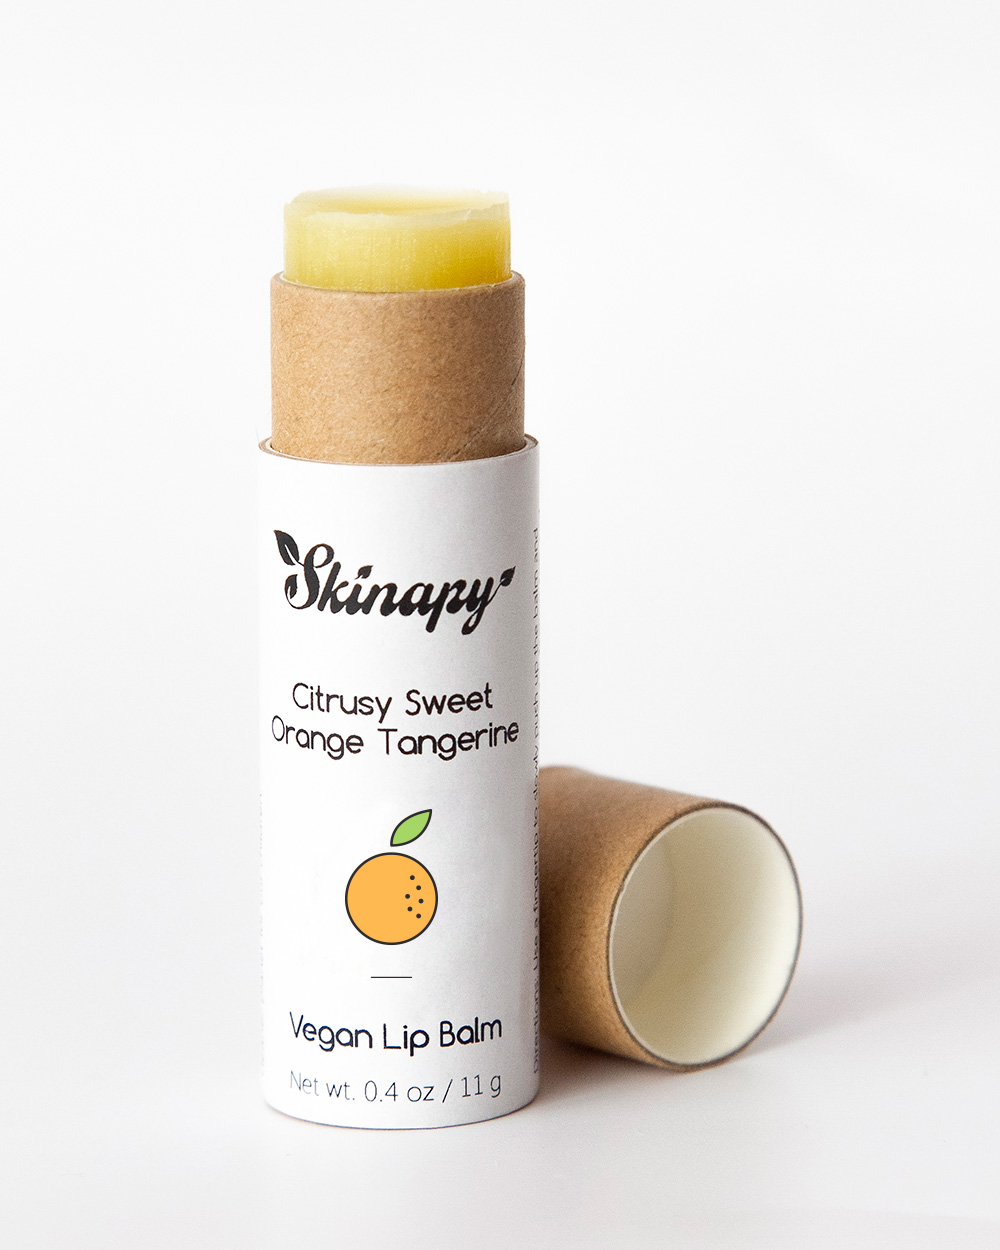 Skinapy natural and organic vegan lip balm with citrus scent packaged in biodegradable paper tube